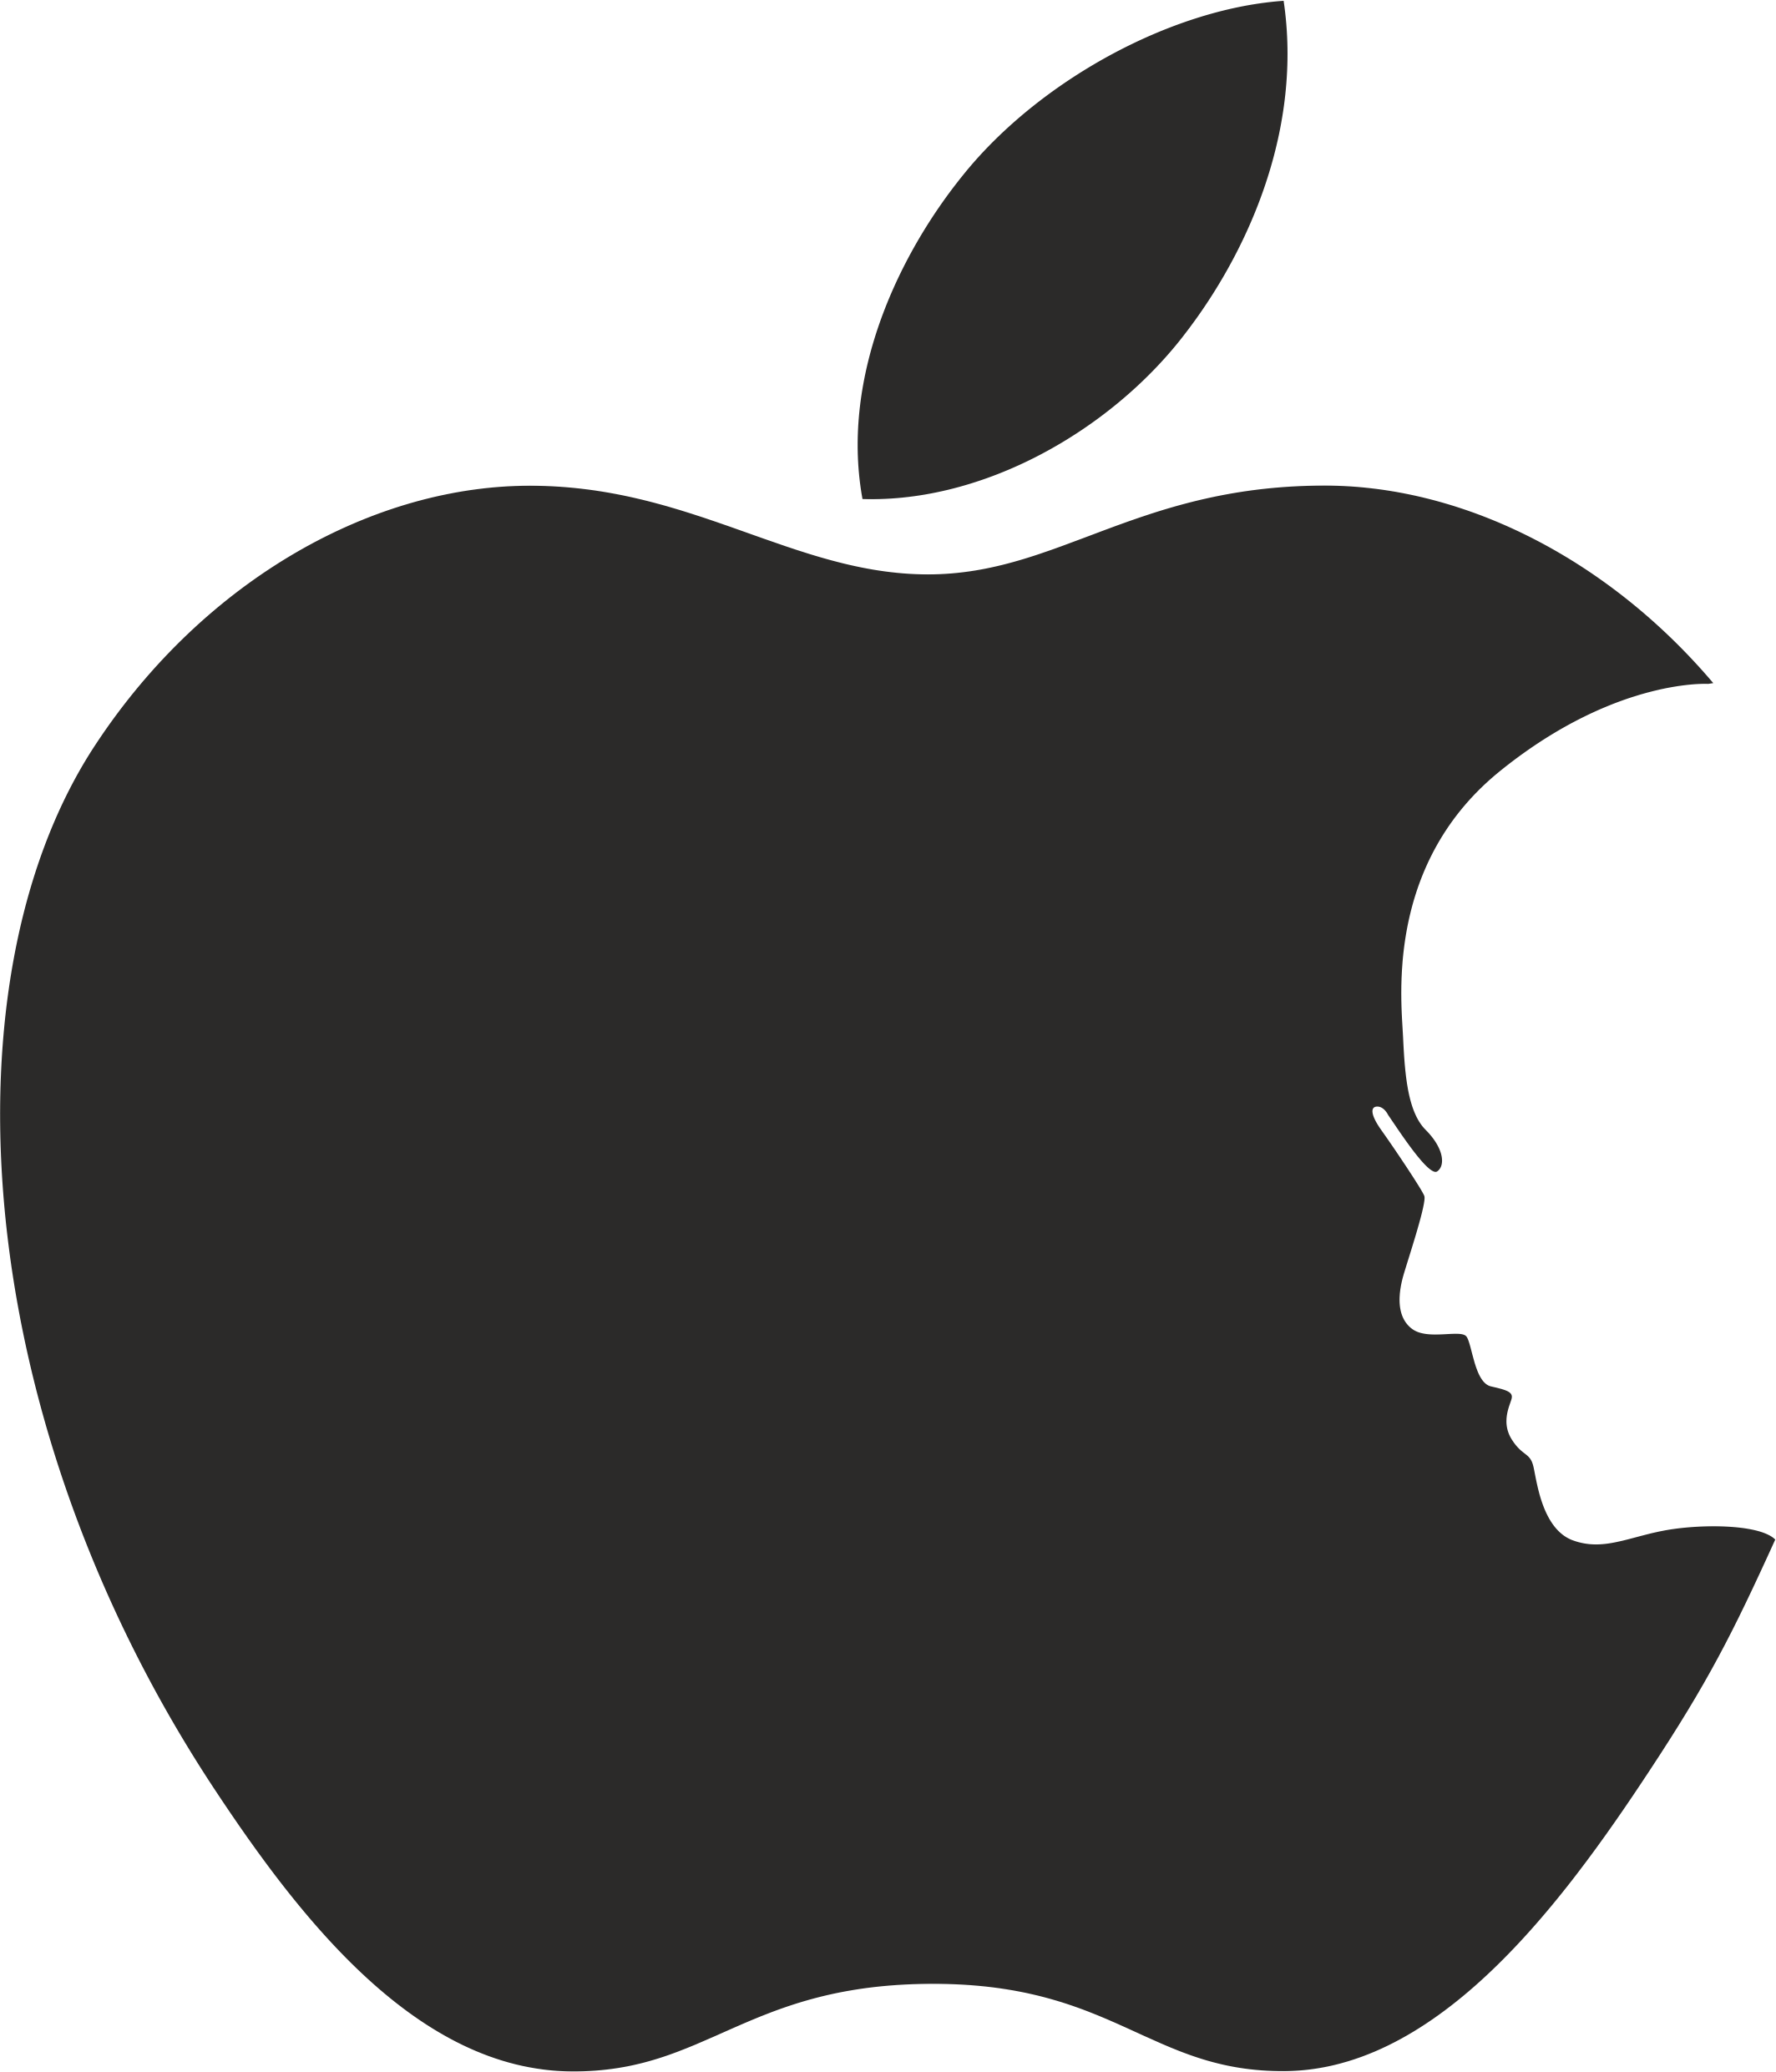 Happy apple running clipart vector freeuse stock Apple & Steve Jobs. - HESONWHEELS.COM vector freeuse stock